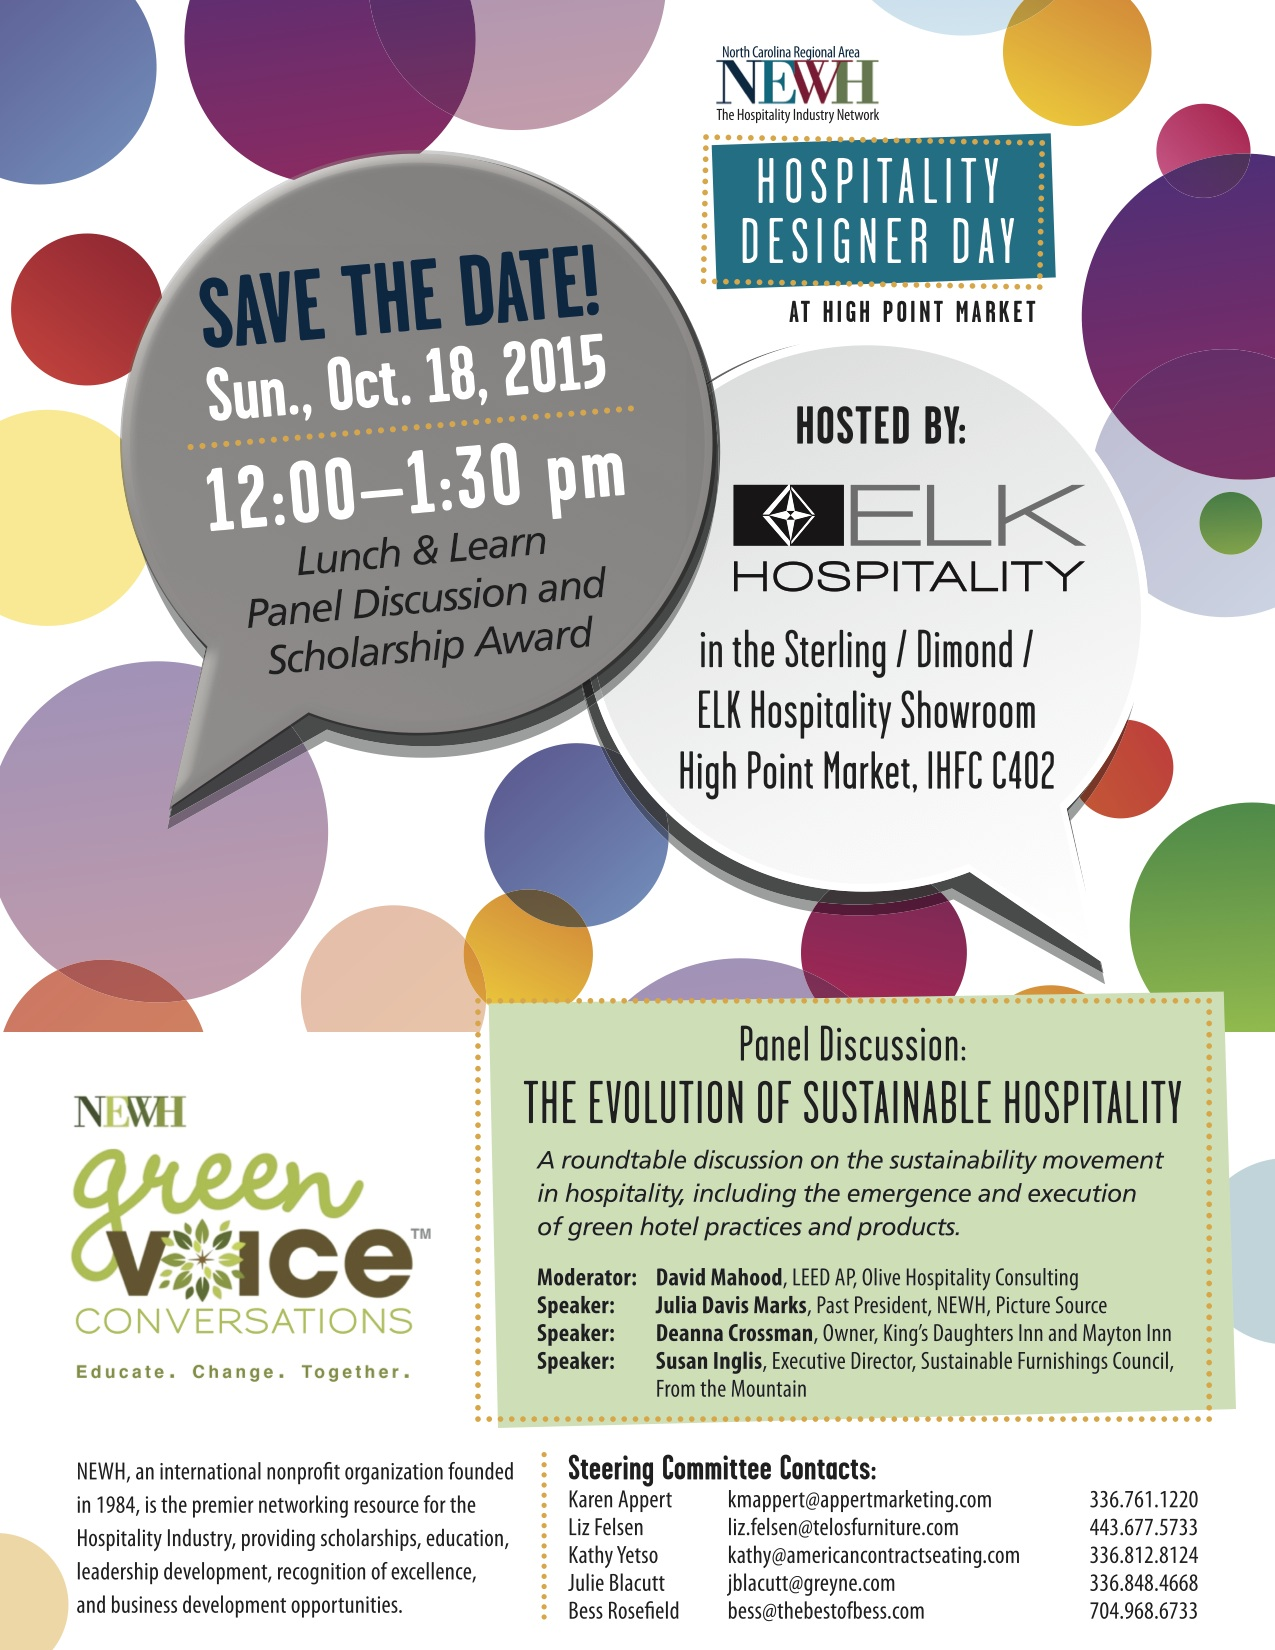 NEWH NC Green Voice Hospitality Designer Day 2015.jpg